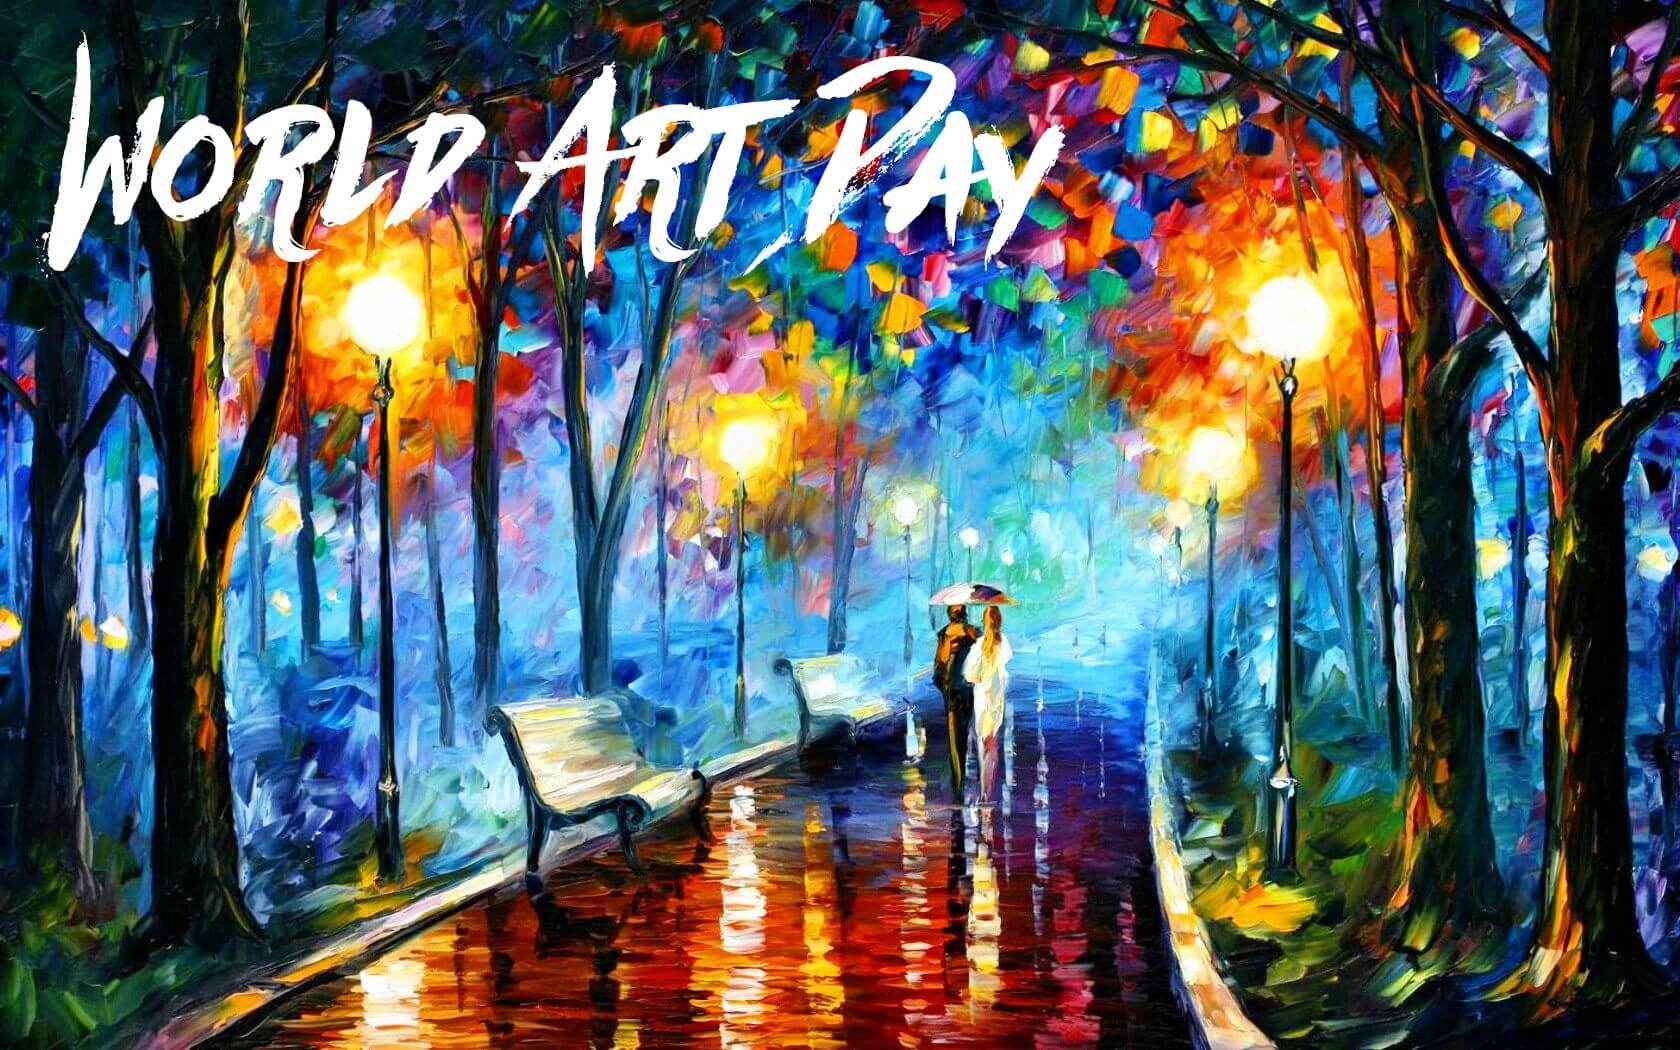 happy world art day modern paintings love couples walking hd wallpaper